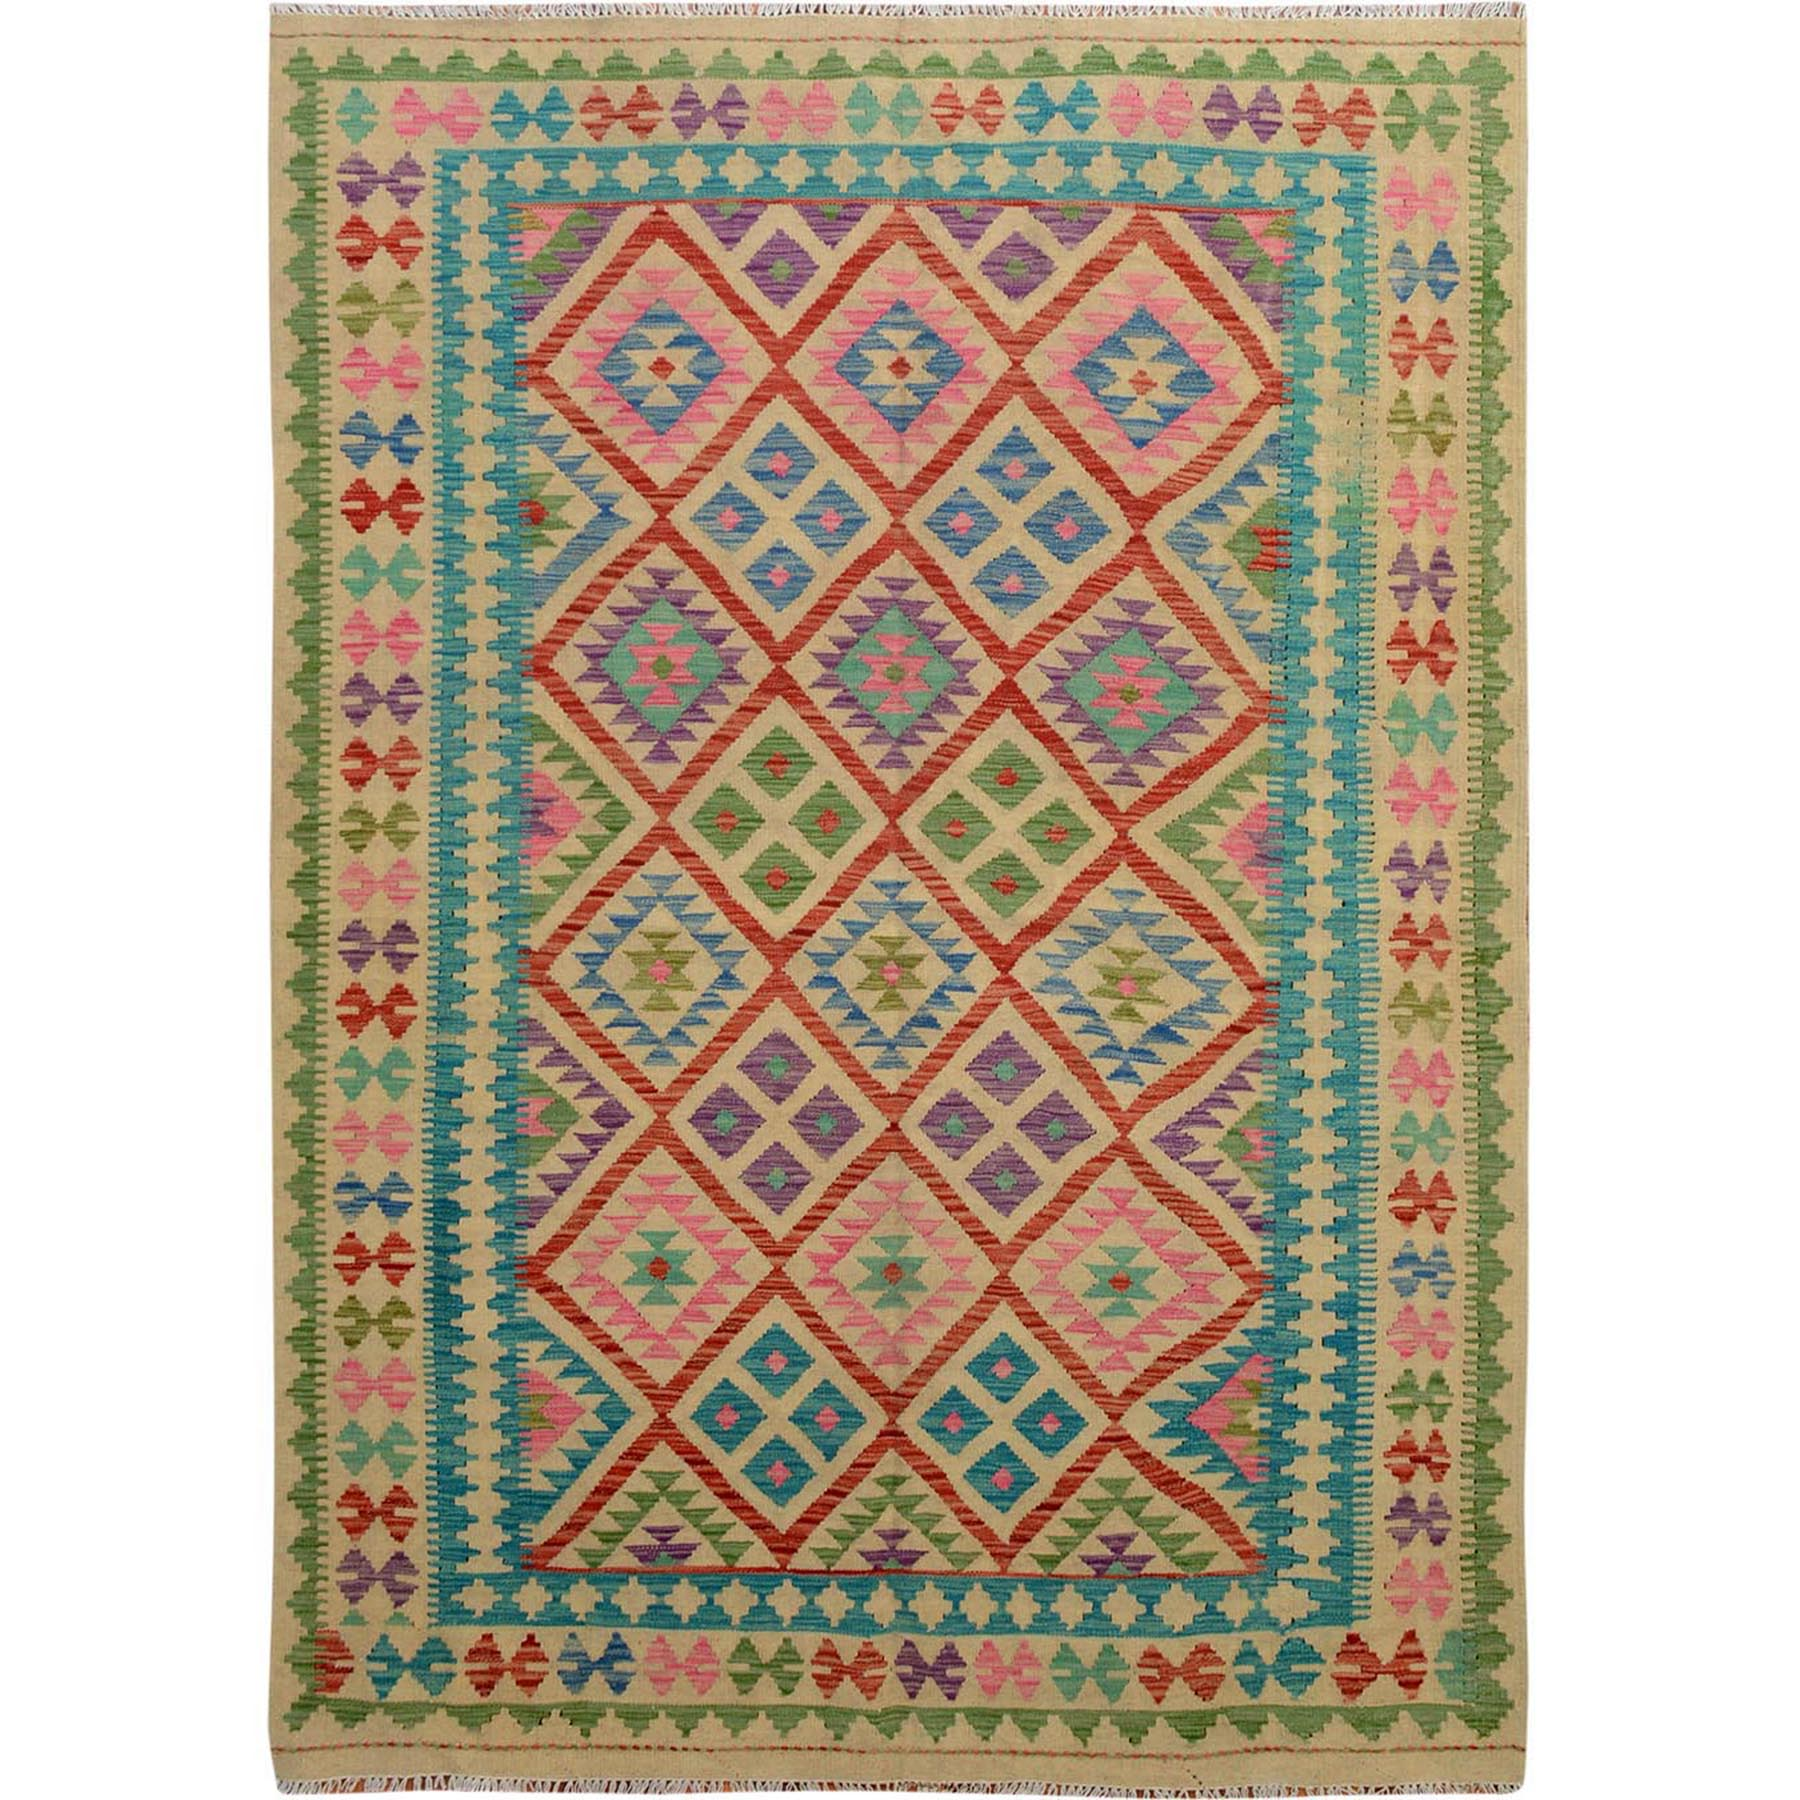 "5'7""x7'10"" Multi-Colors Afghan Reversible Kilim Pure Wool Hand Woven Oriental Rug"